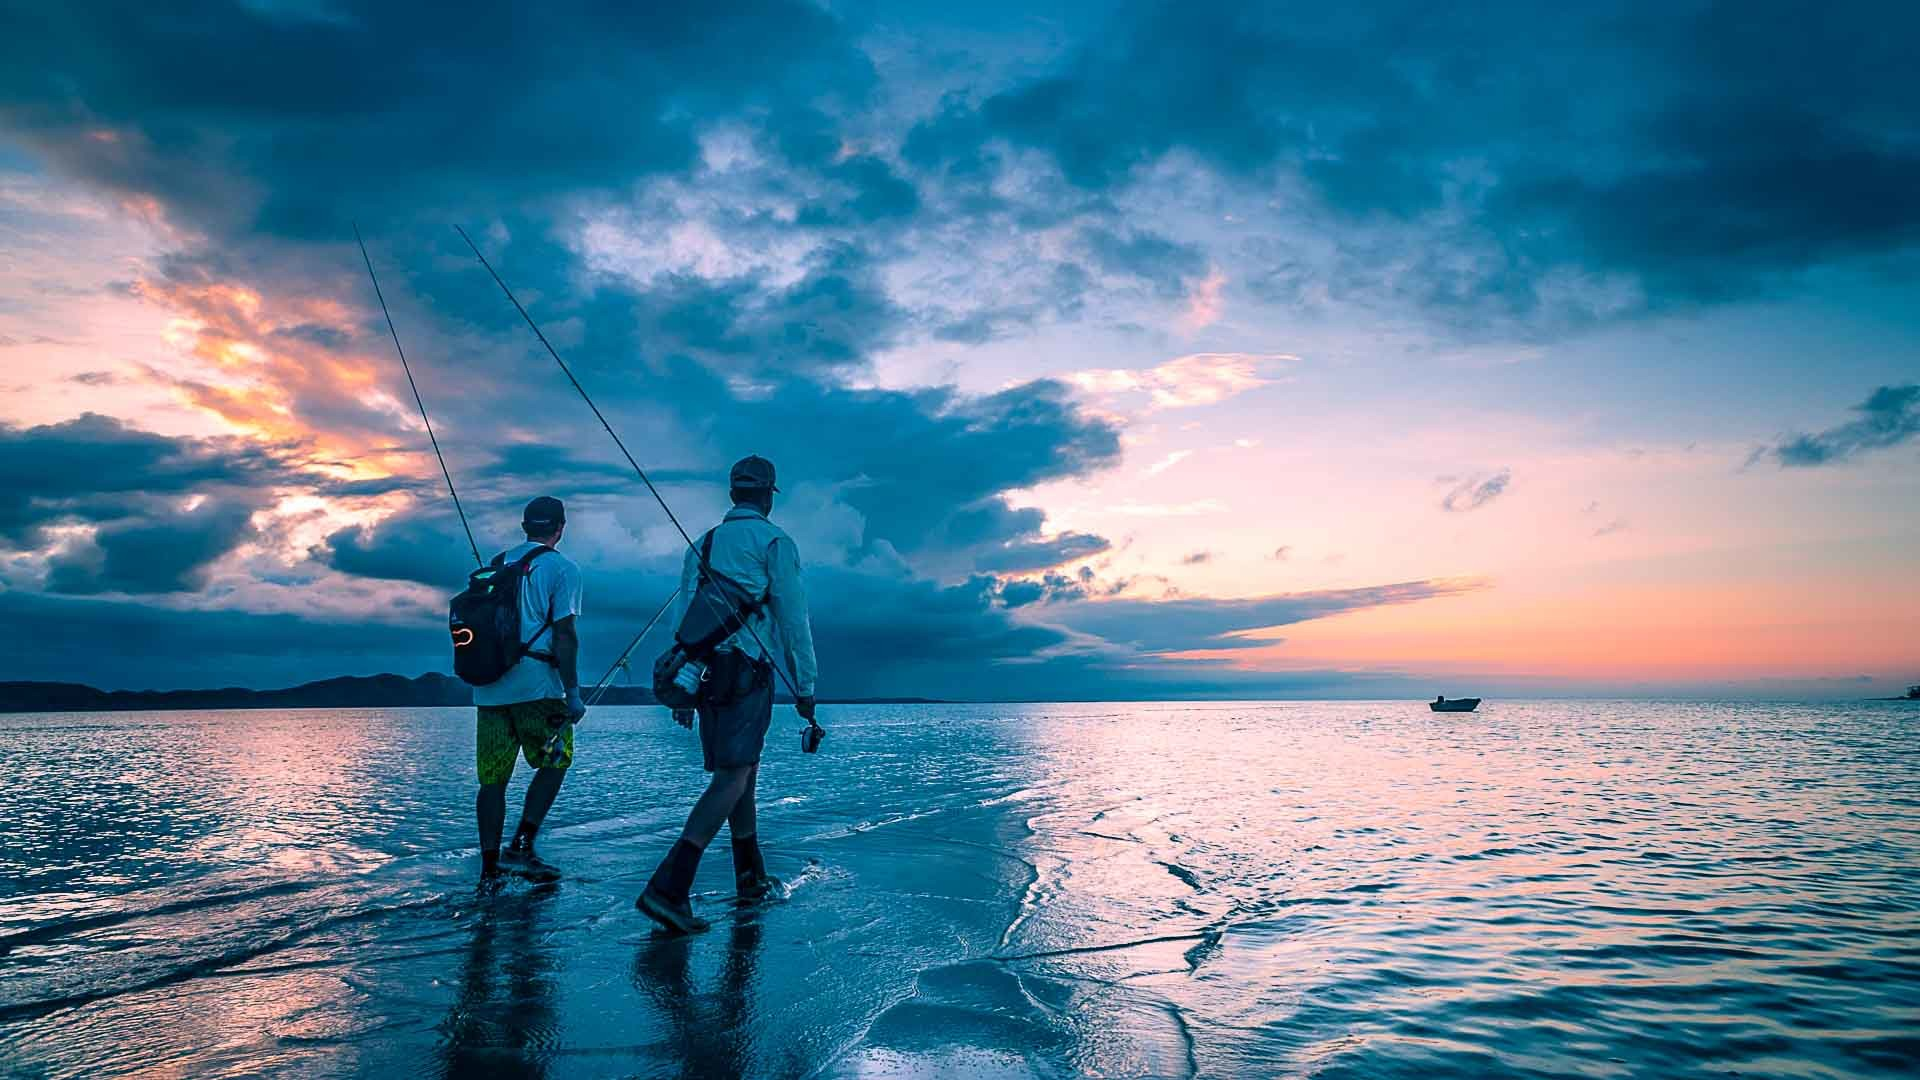 Hd Fishing Wallpaper Posted By Samantha Simpson